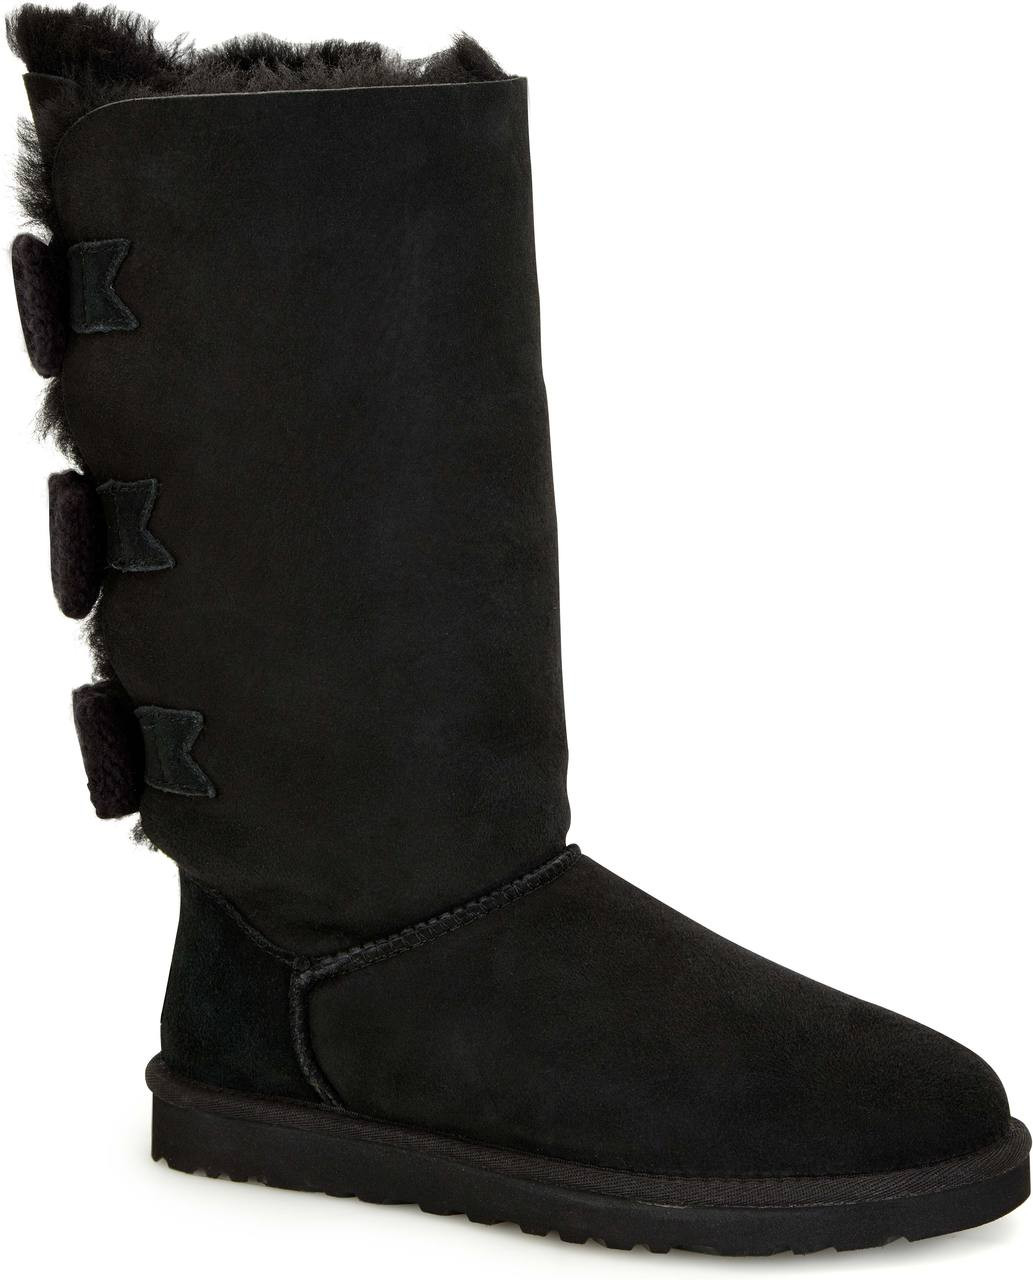 ... UGG Australia Women's Tall Bailey Knit Bow. Black